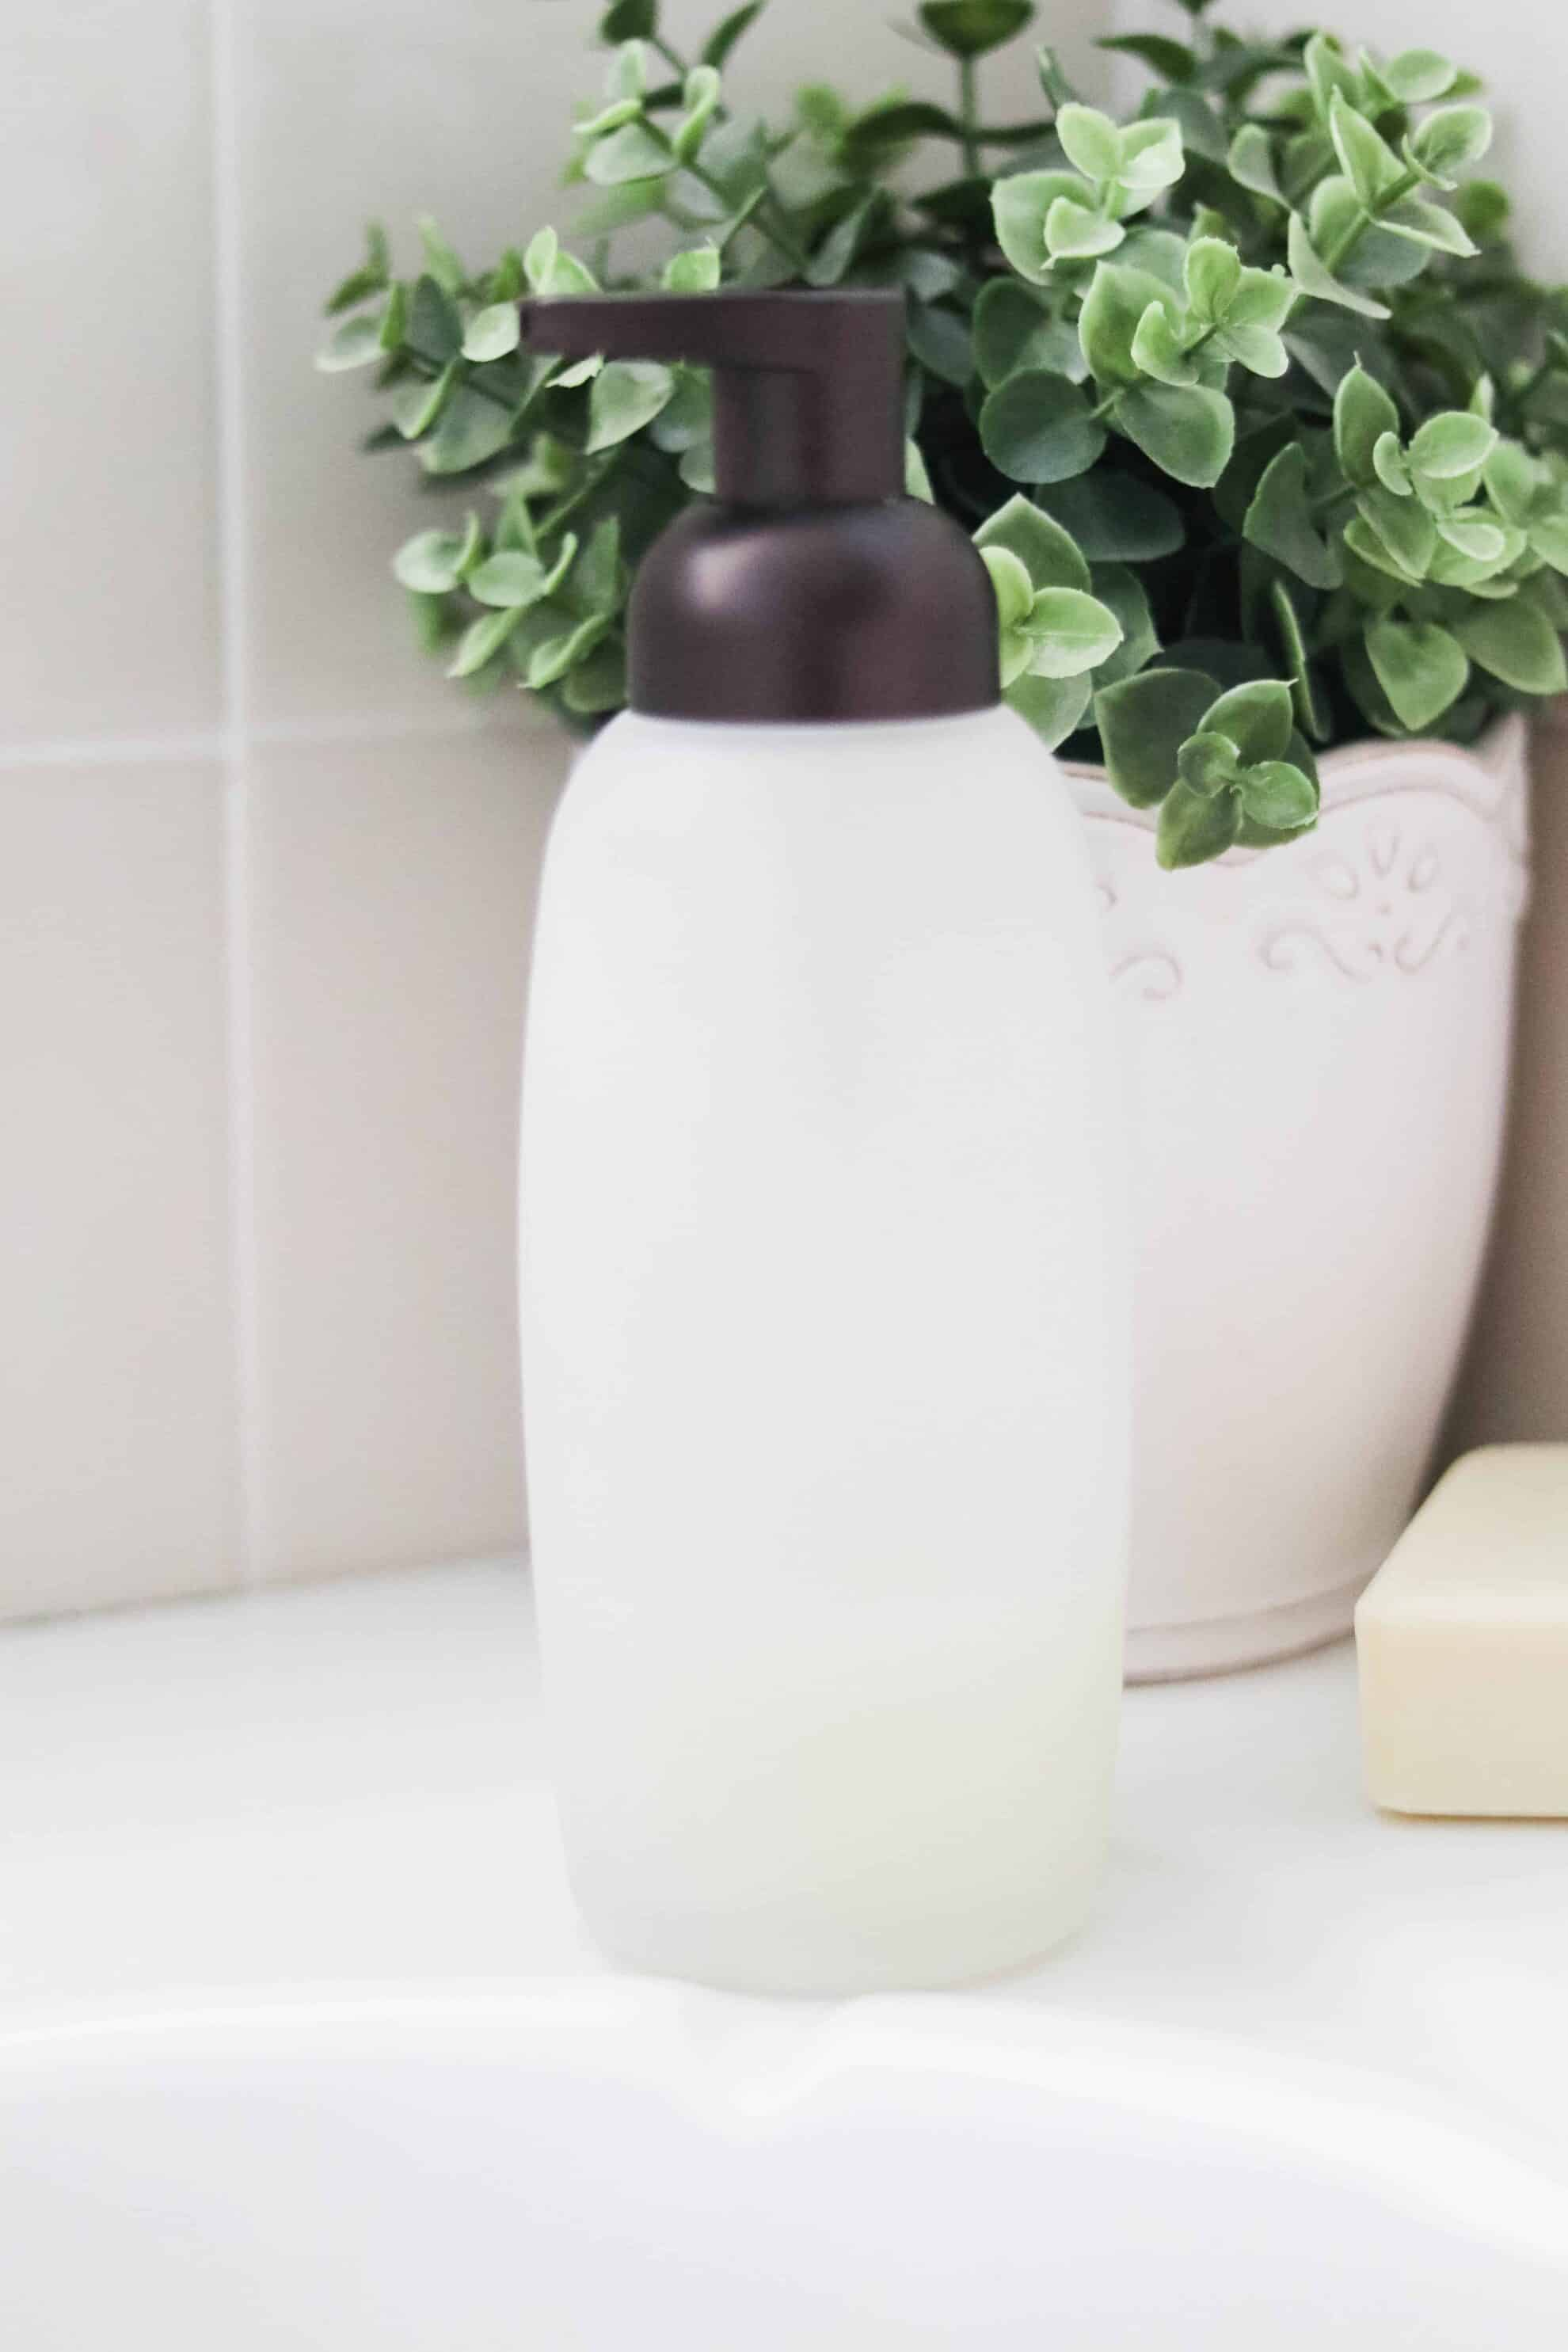 foaming hand soap dispenser on white bath tub